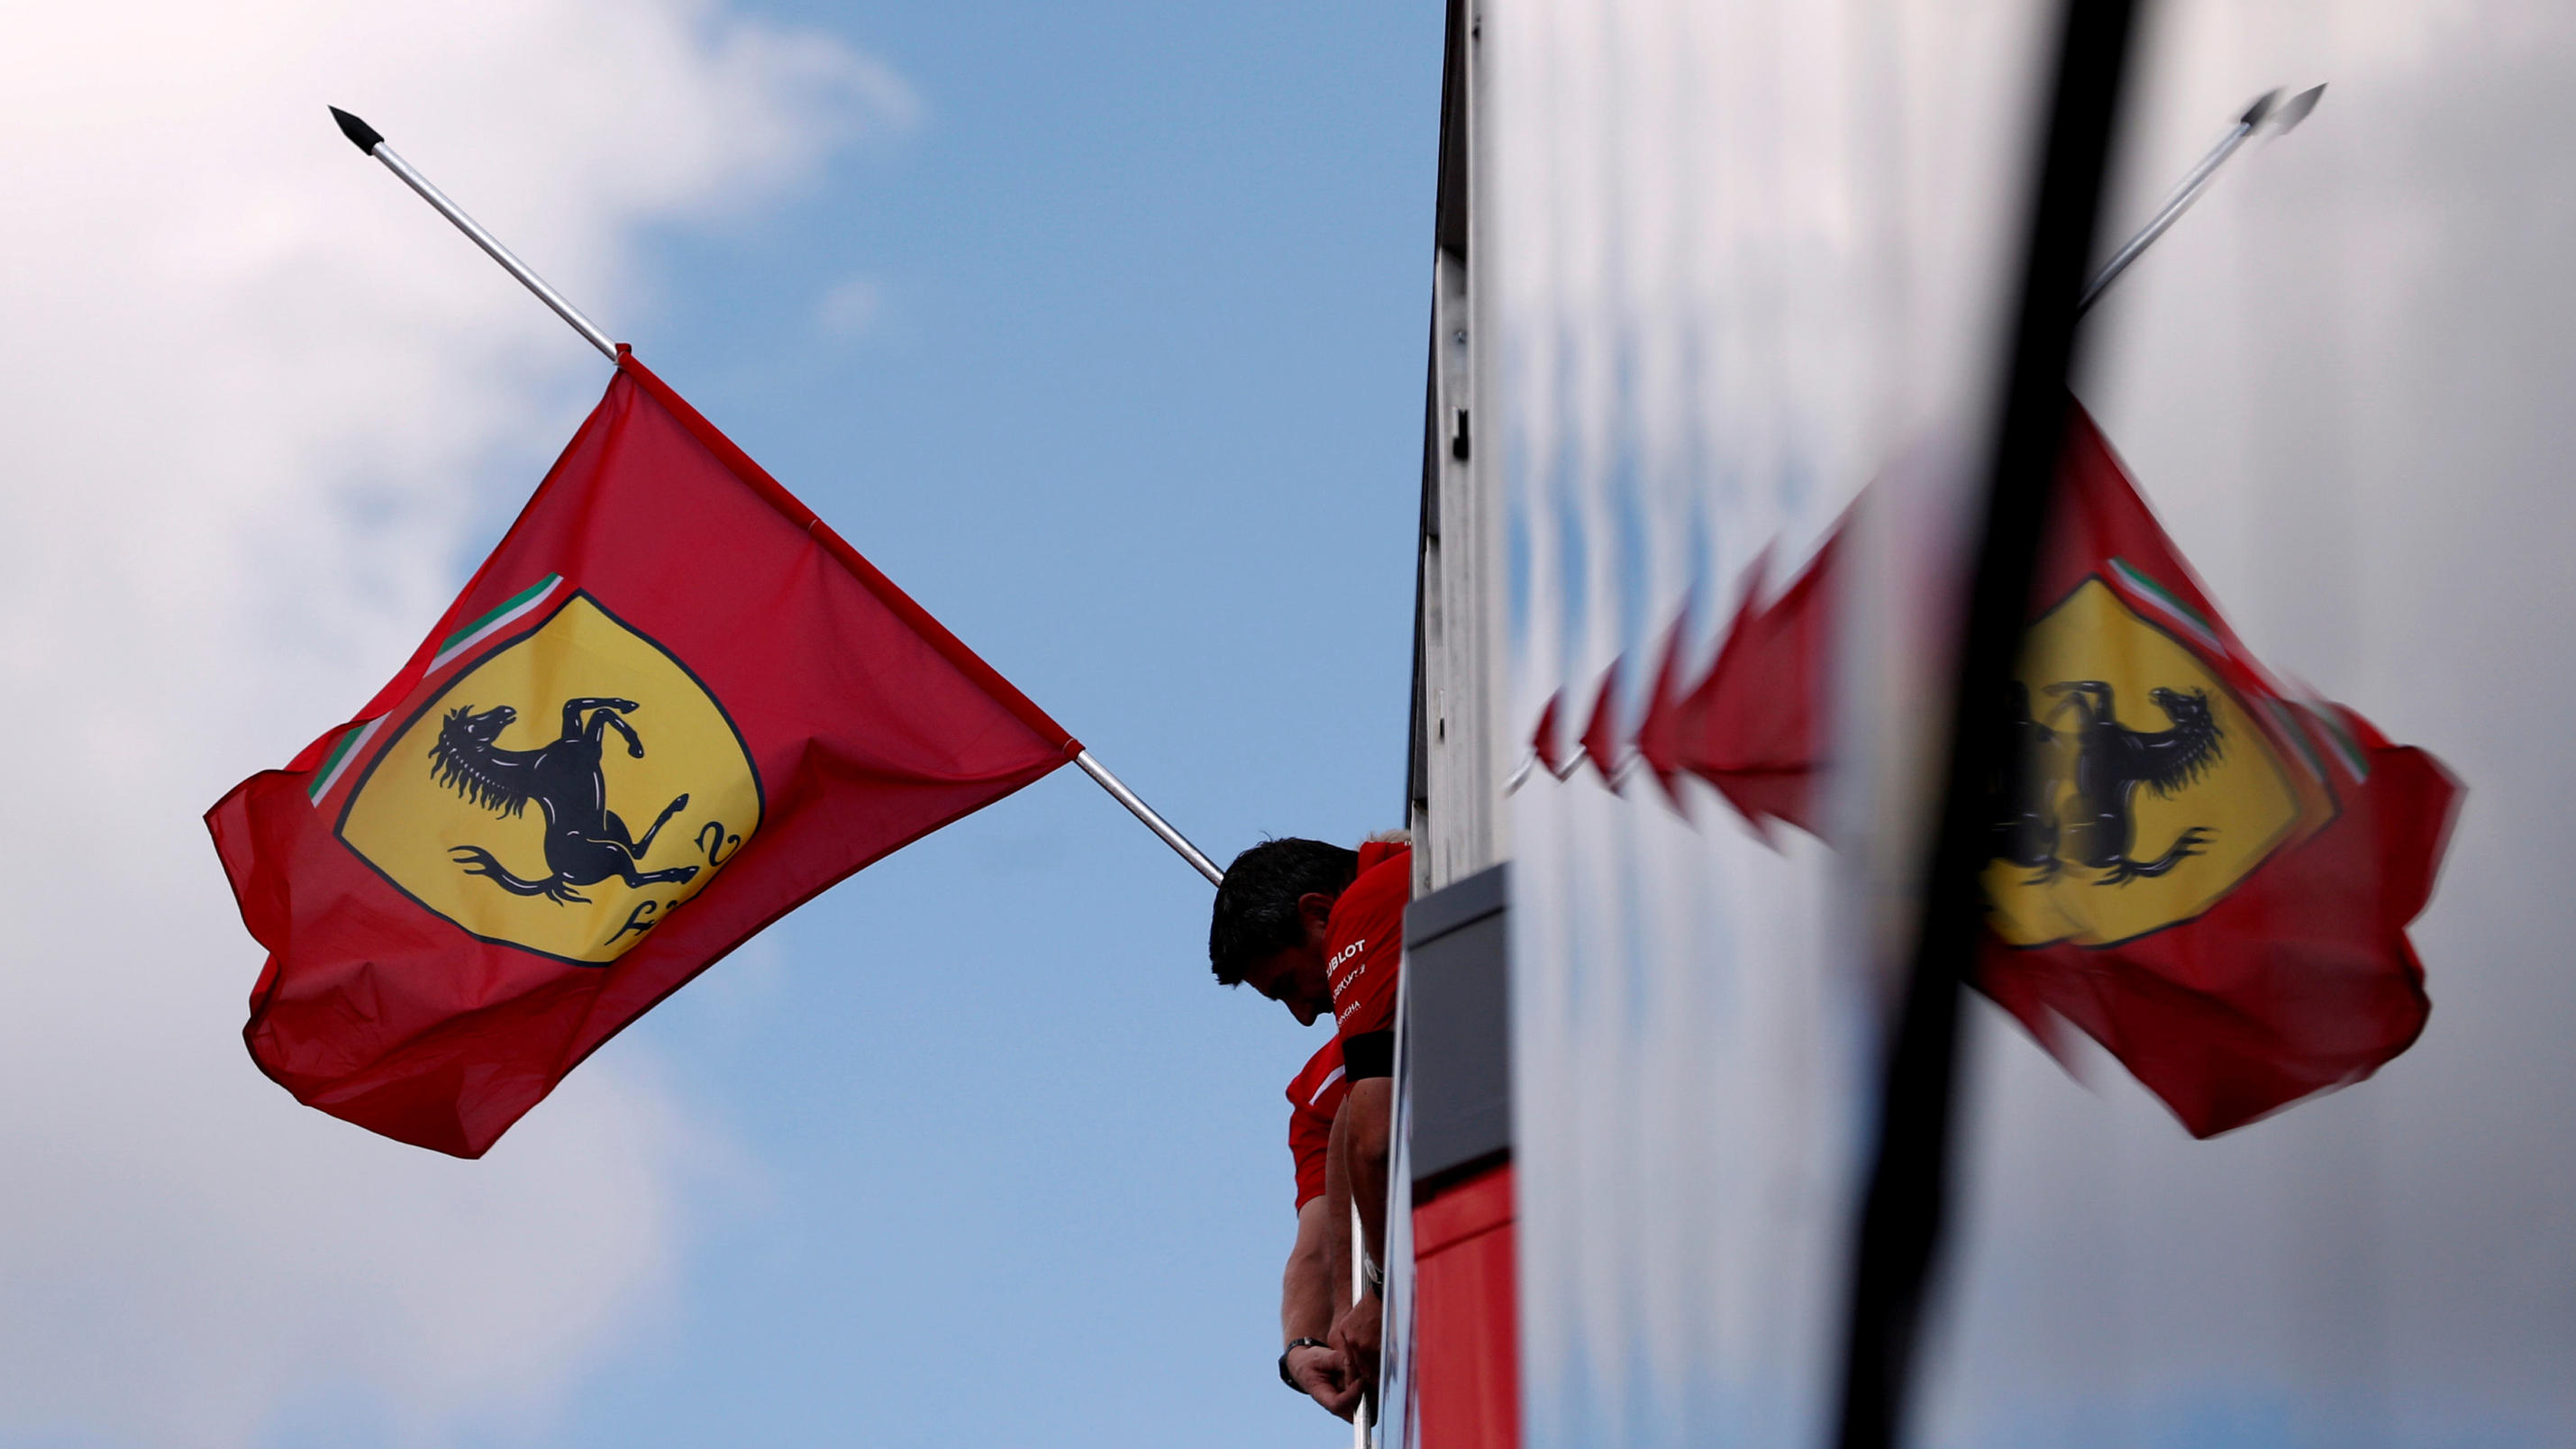 FILE PHOTO: Formula One F1 - Hungarian Grand Prix - Hungaroring, Budapest, Hungary - July 26, 2018   A Ferrari flag flies at half mast in tribute to Former Fiat Chrysler CEO Sergio Marchionne   REUTERS/Bernadett Szabo/File Photo